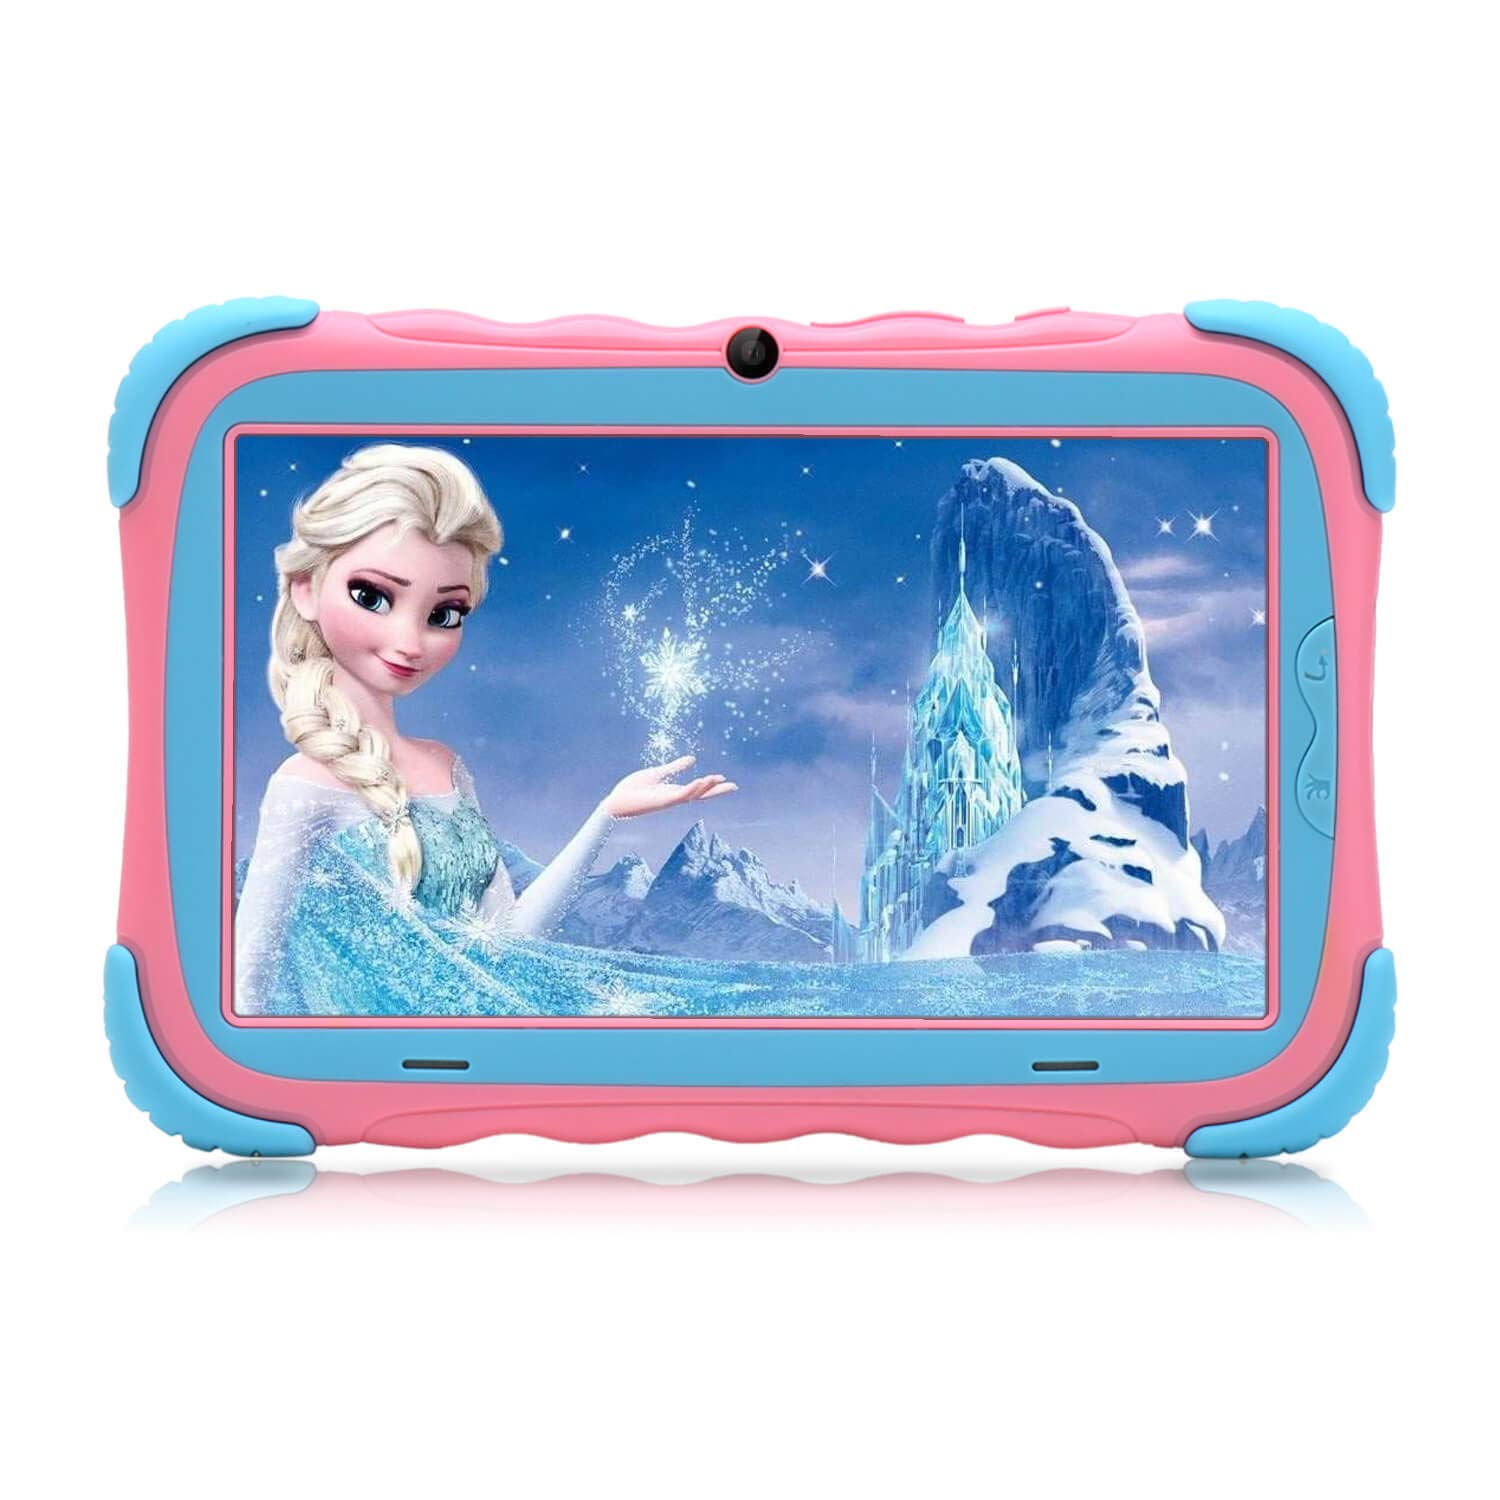 Kids Tablet Protection Bluetooth Kids Proof